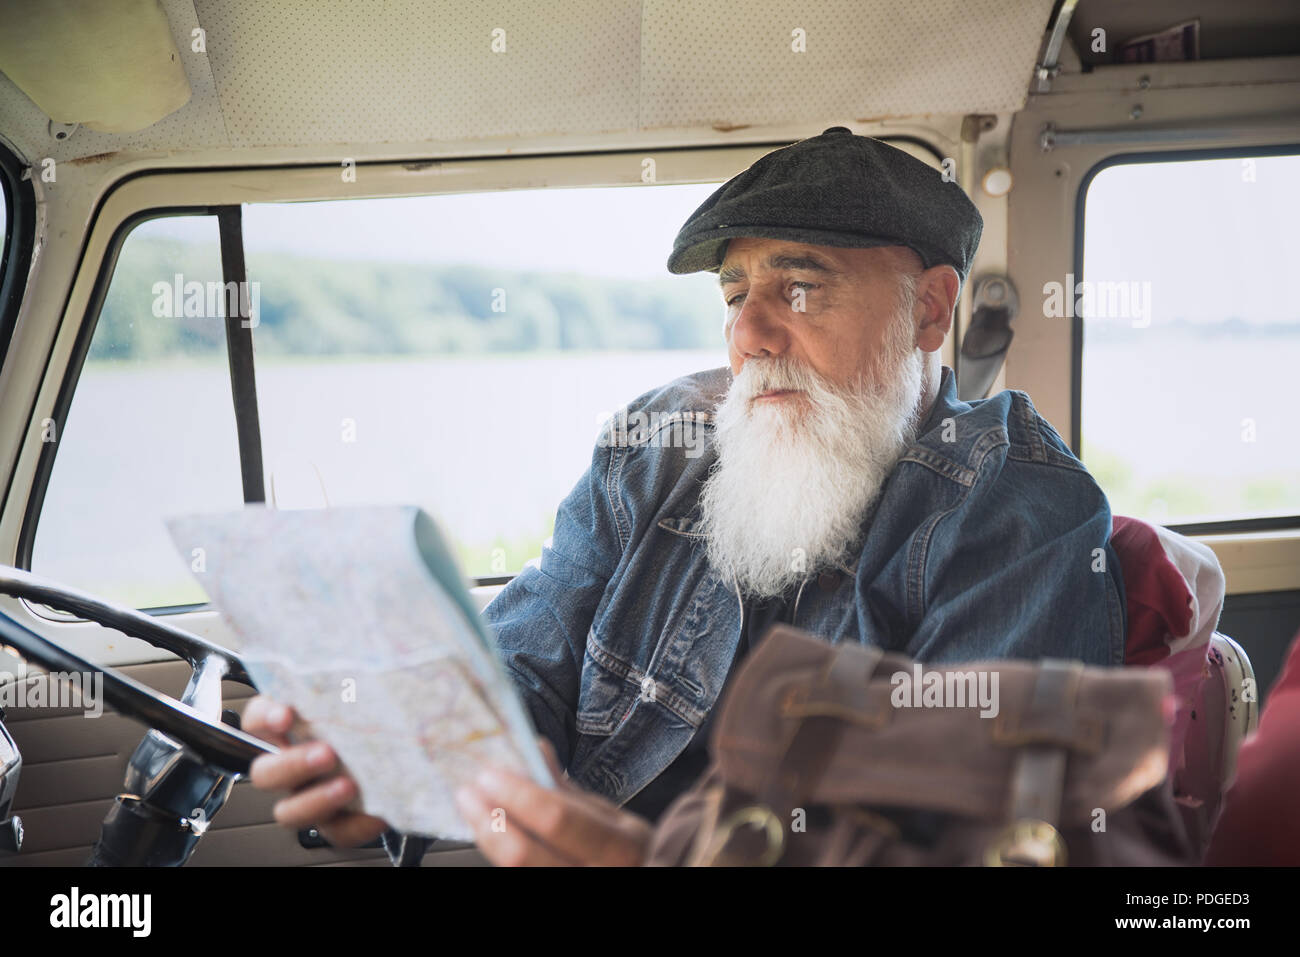 A senior man seated in his camper van looks at a road map - Stock Image